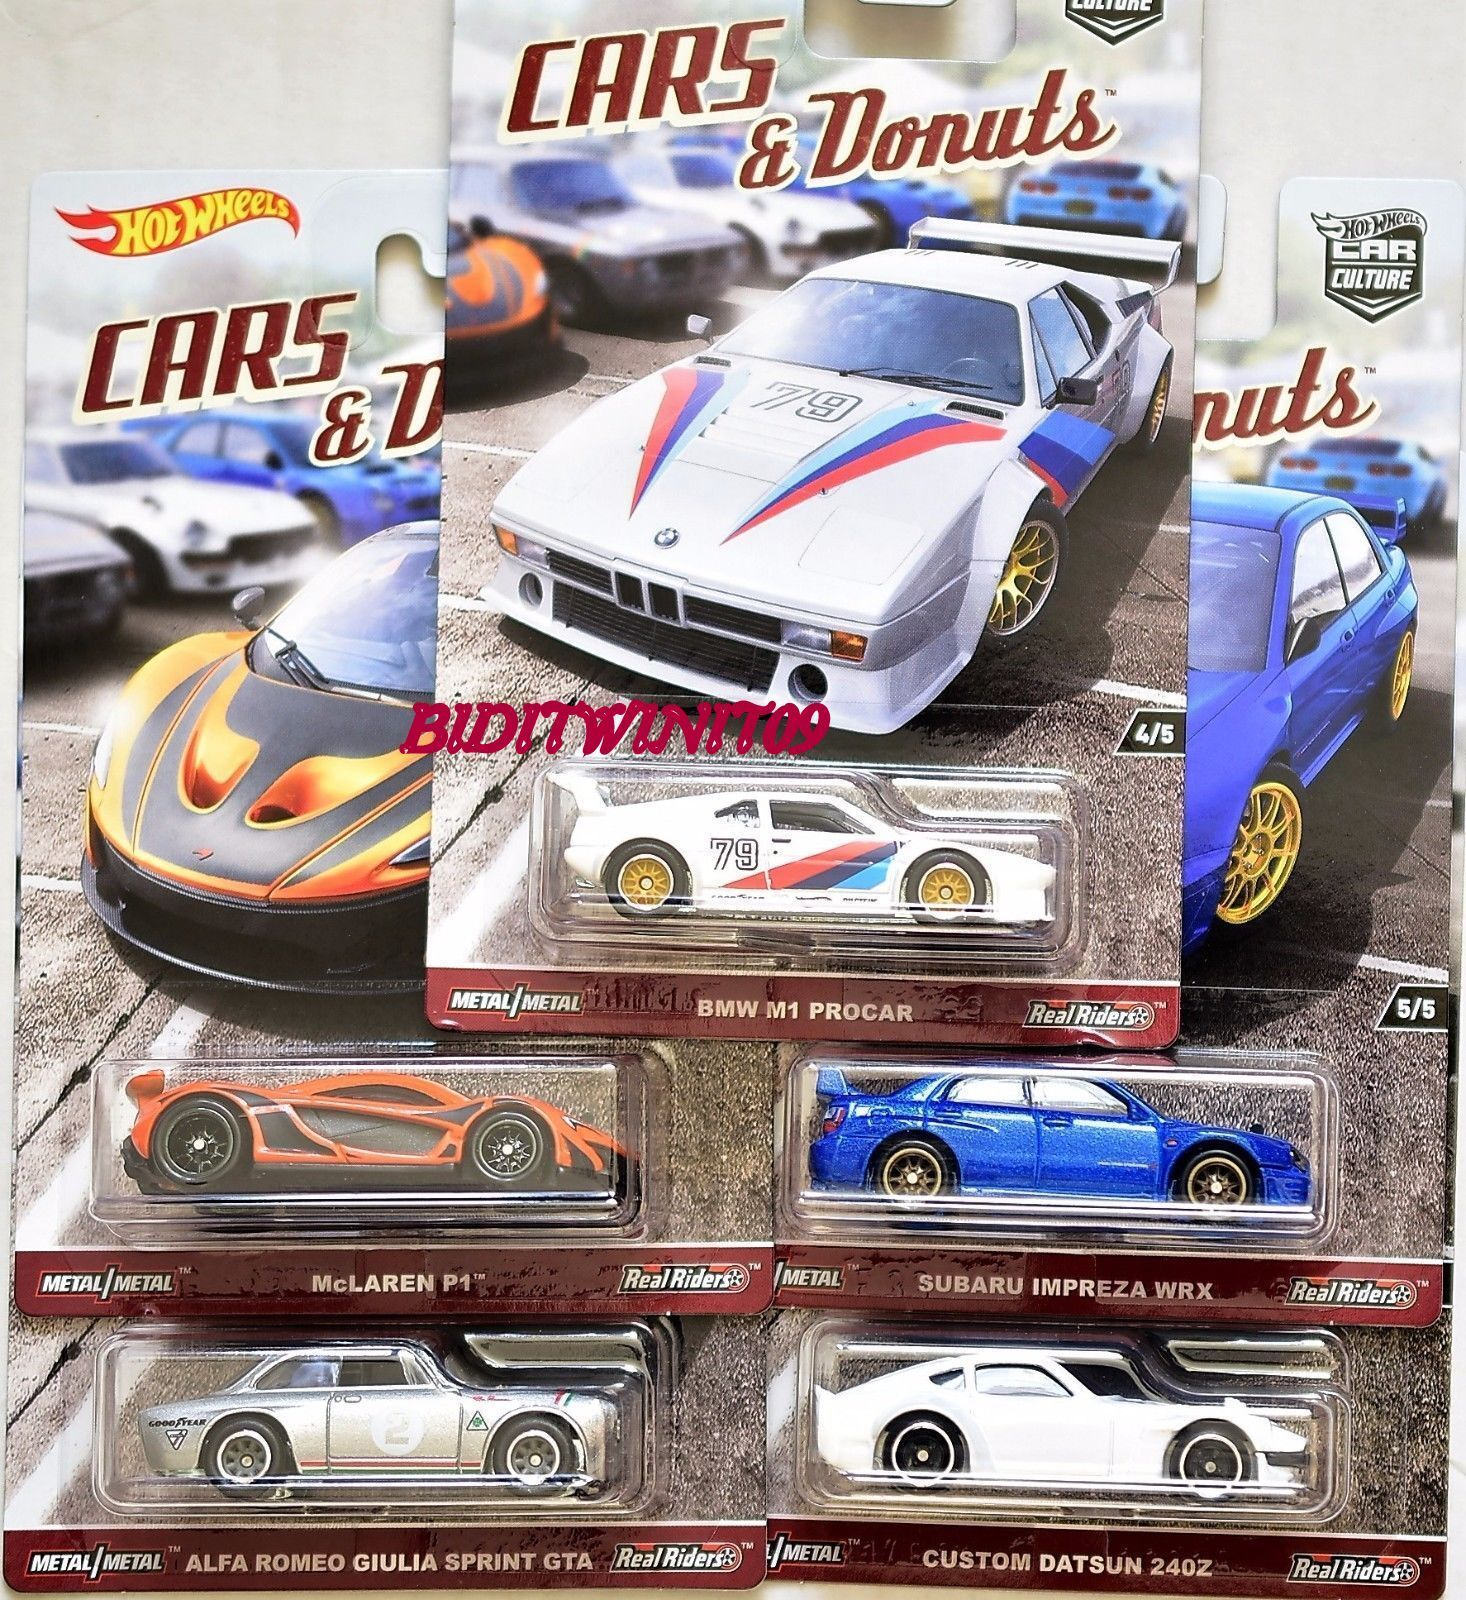 Купить HOT WHEELS 2017 CAR CULTURE CARS DONUTS SET OF 5 DATSUN SUBARU BMW